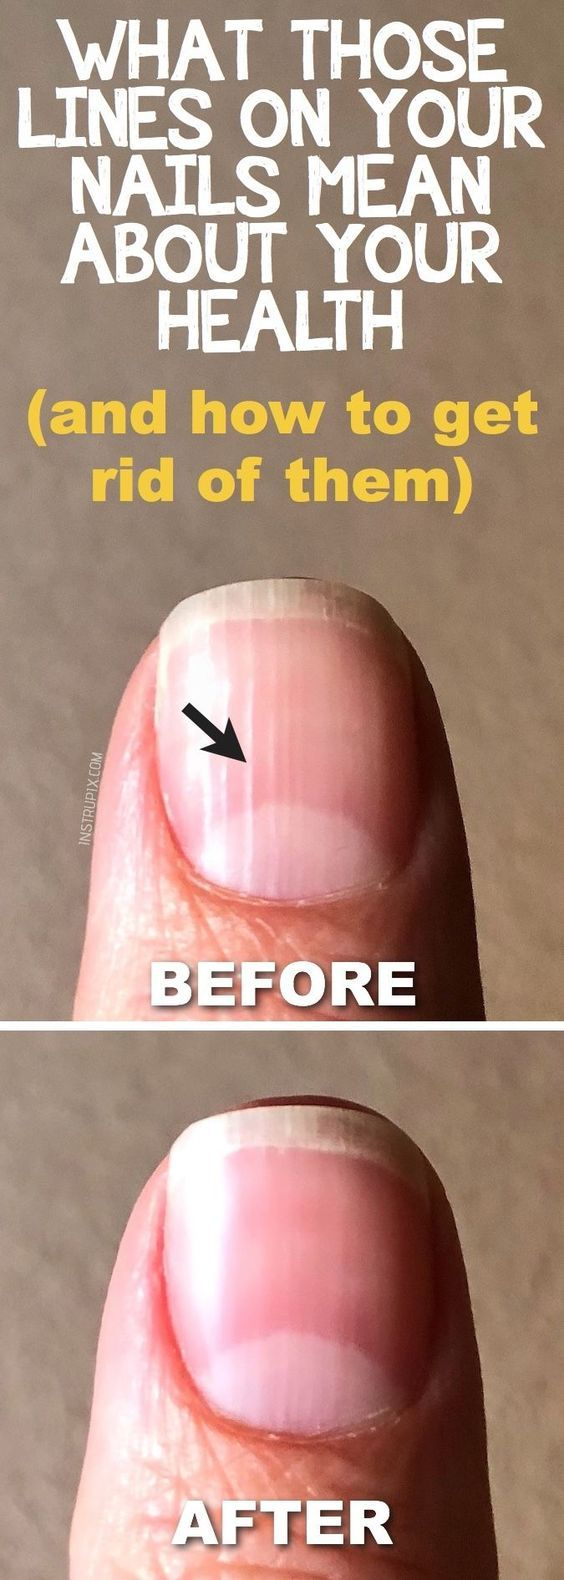 Do You Know About Those Lines On Your Figure Nails? & How To Get Rid Of Them – L/H